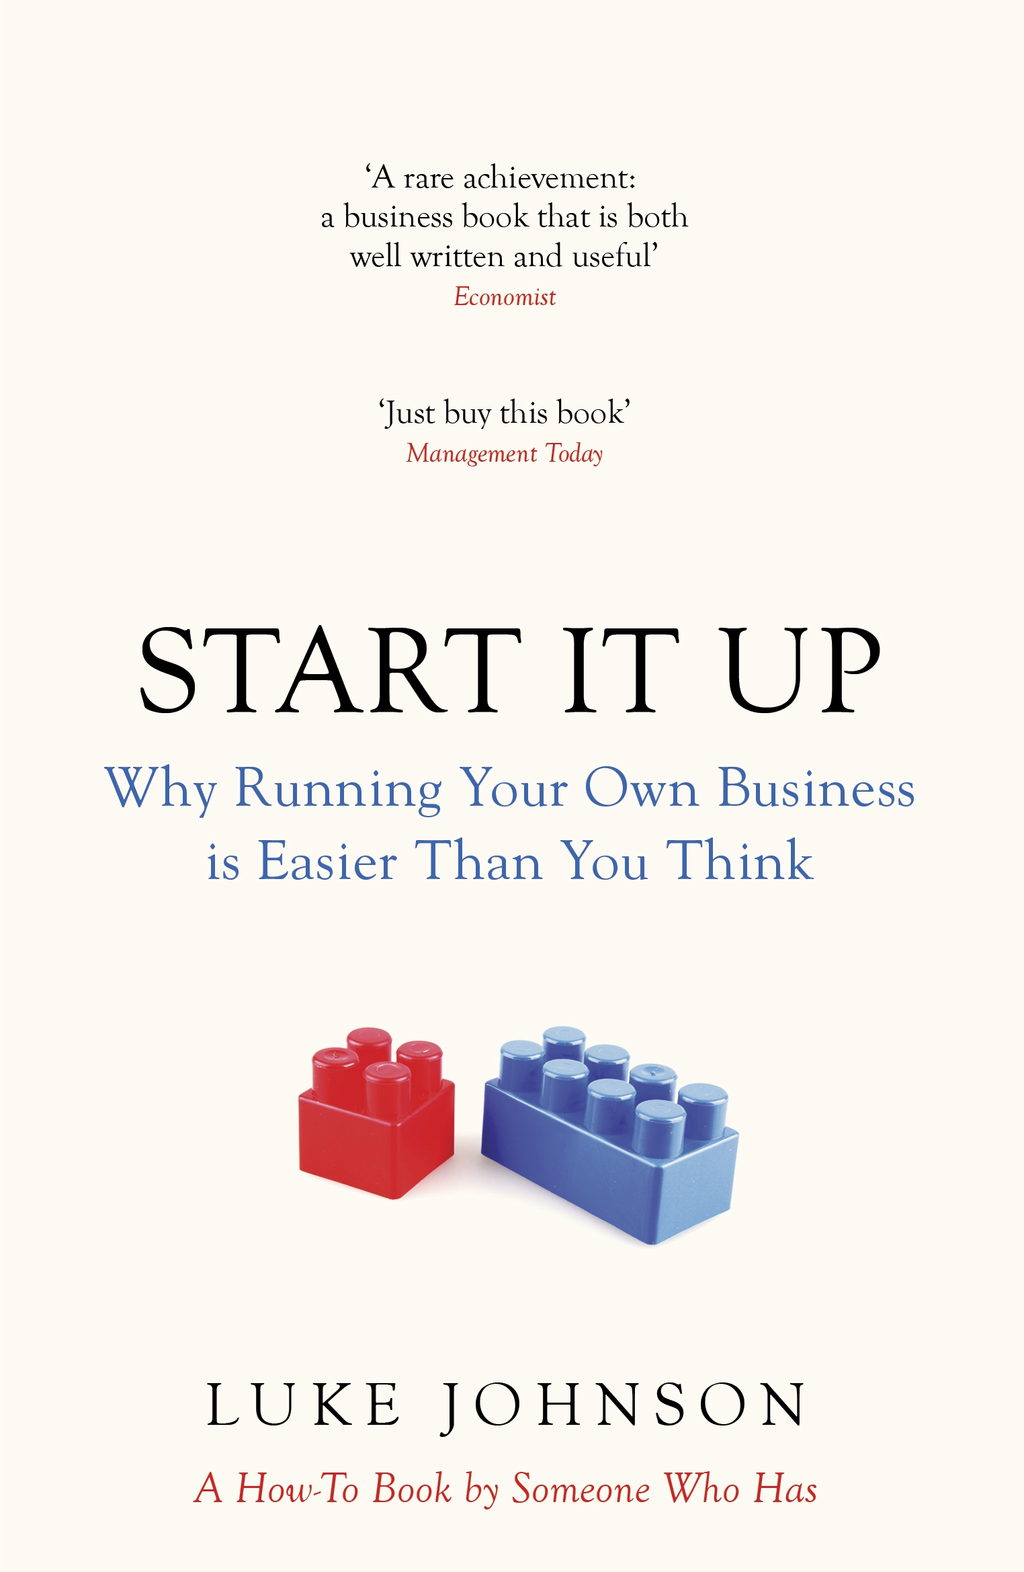 Start It Up Why Running Your Own Business is Easier Than You Think